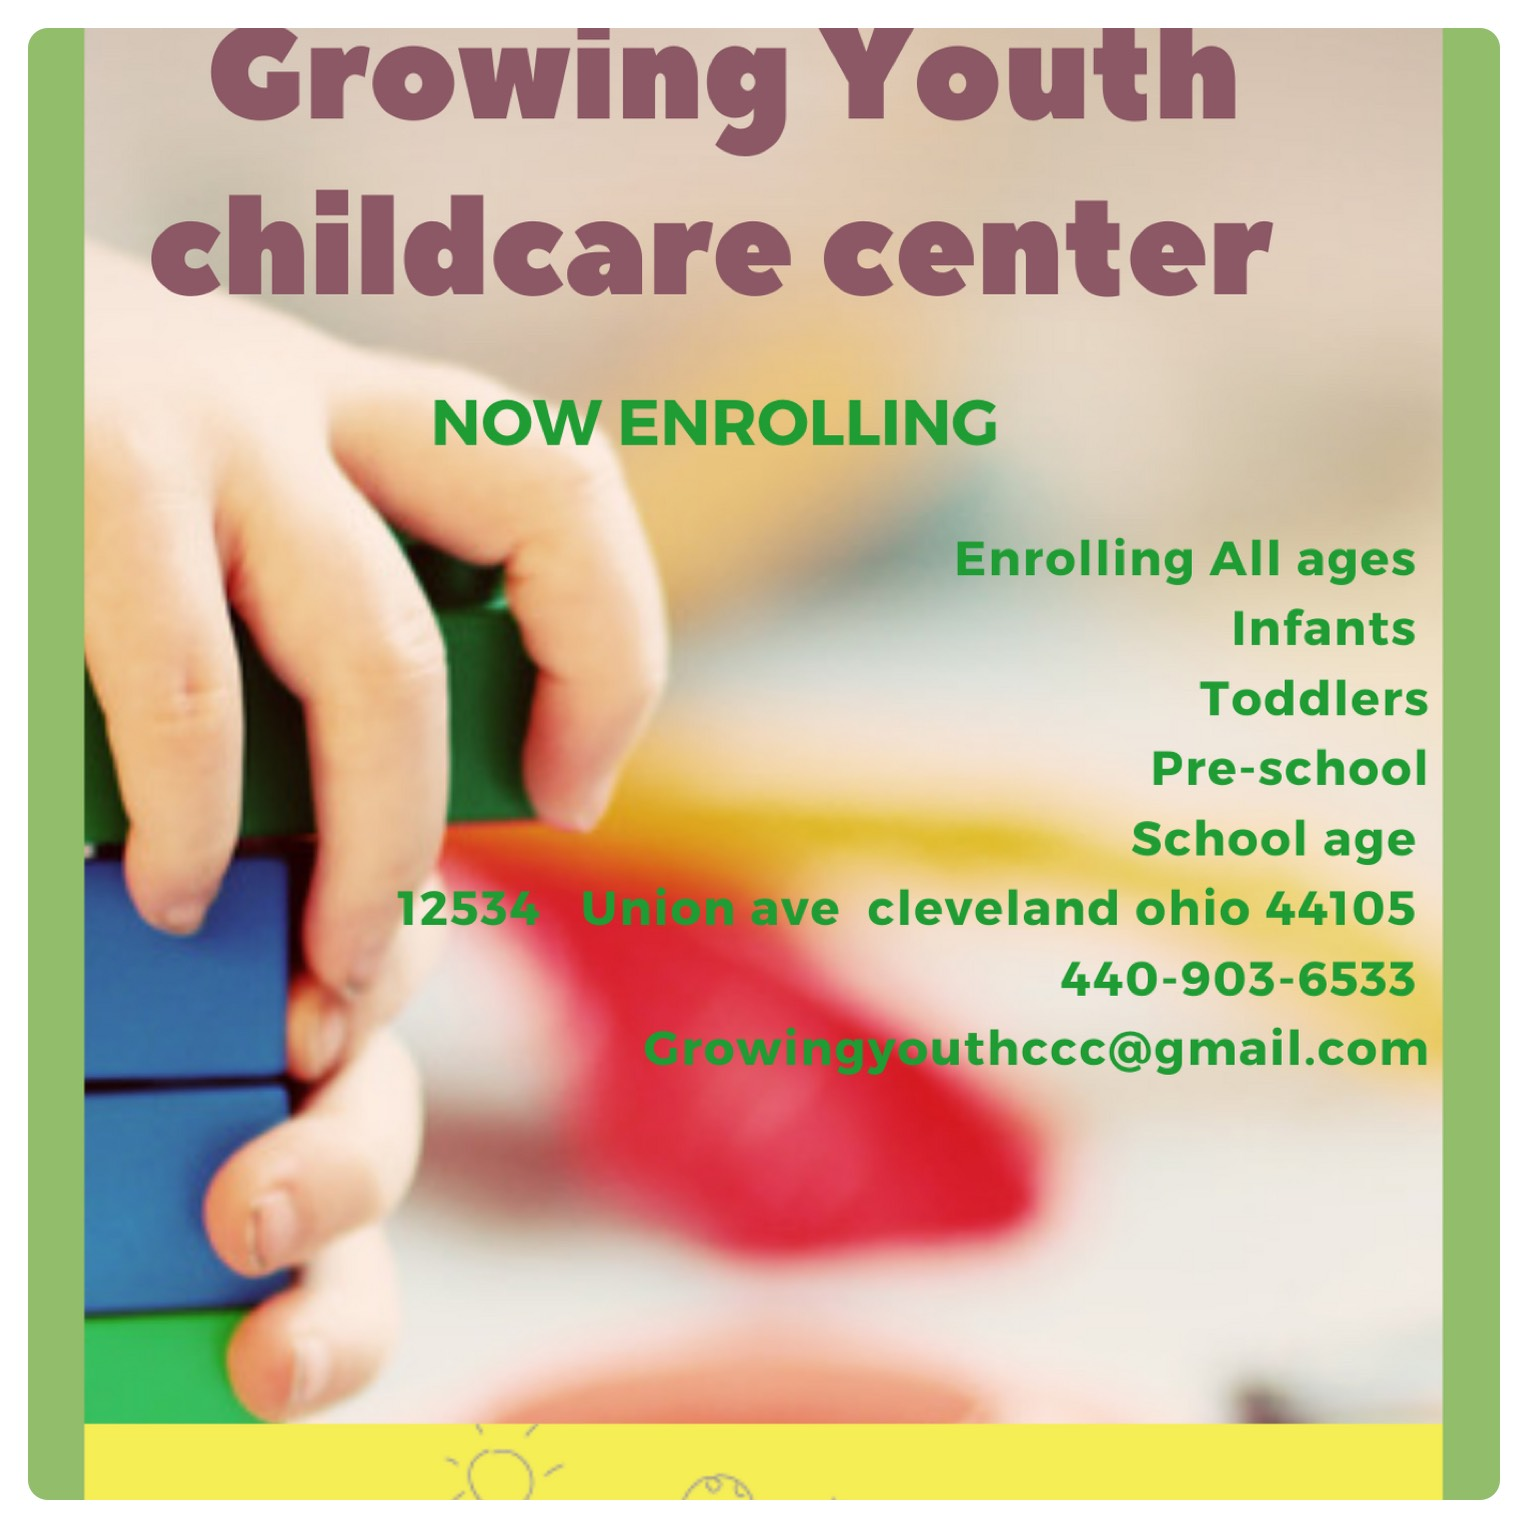 GROWING YOUTH CHILDCARE